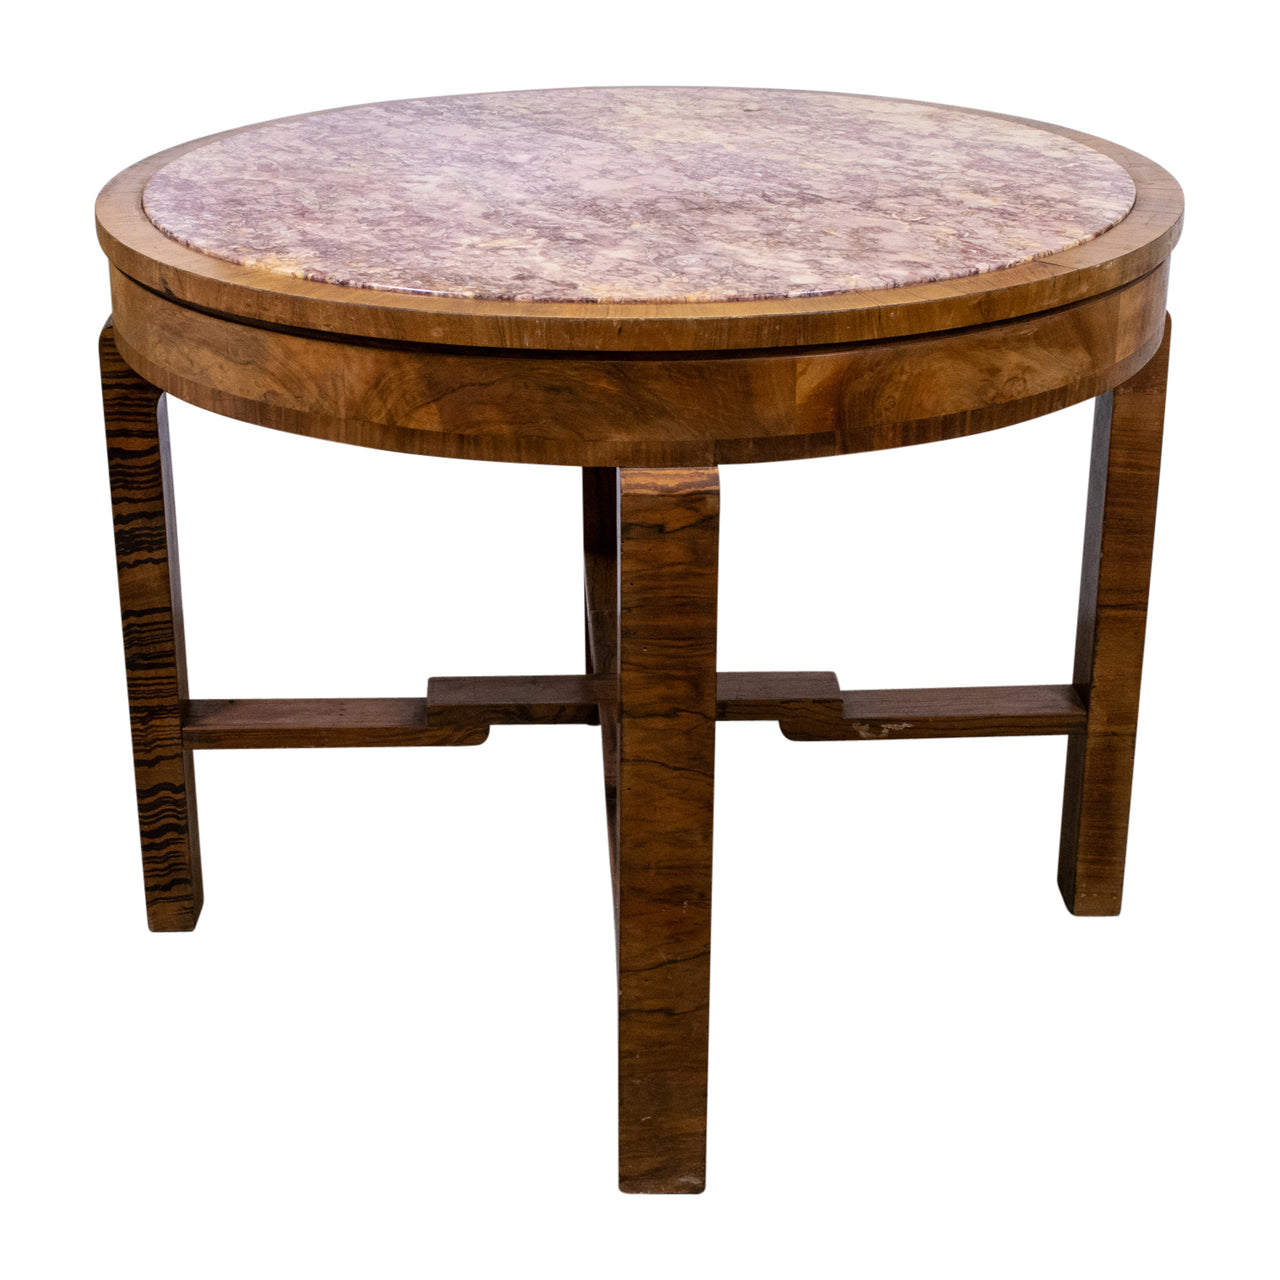 Art Deco Circular Table with Marble Top